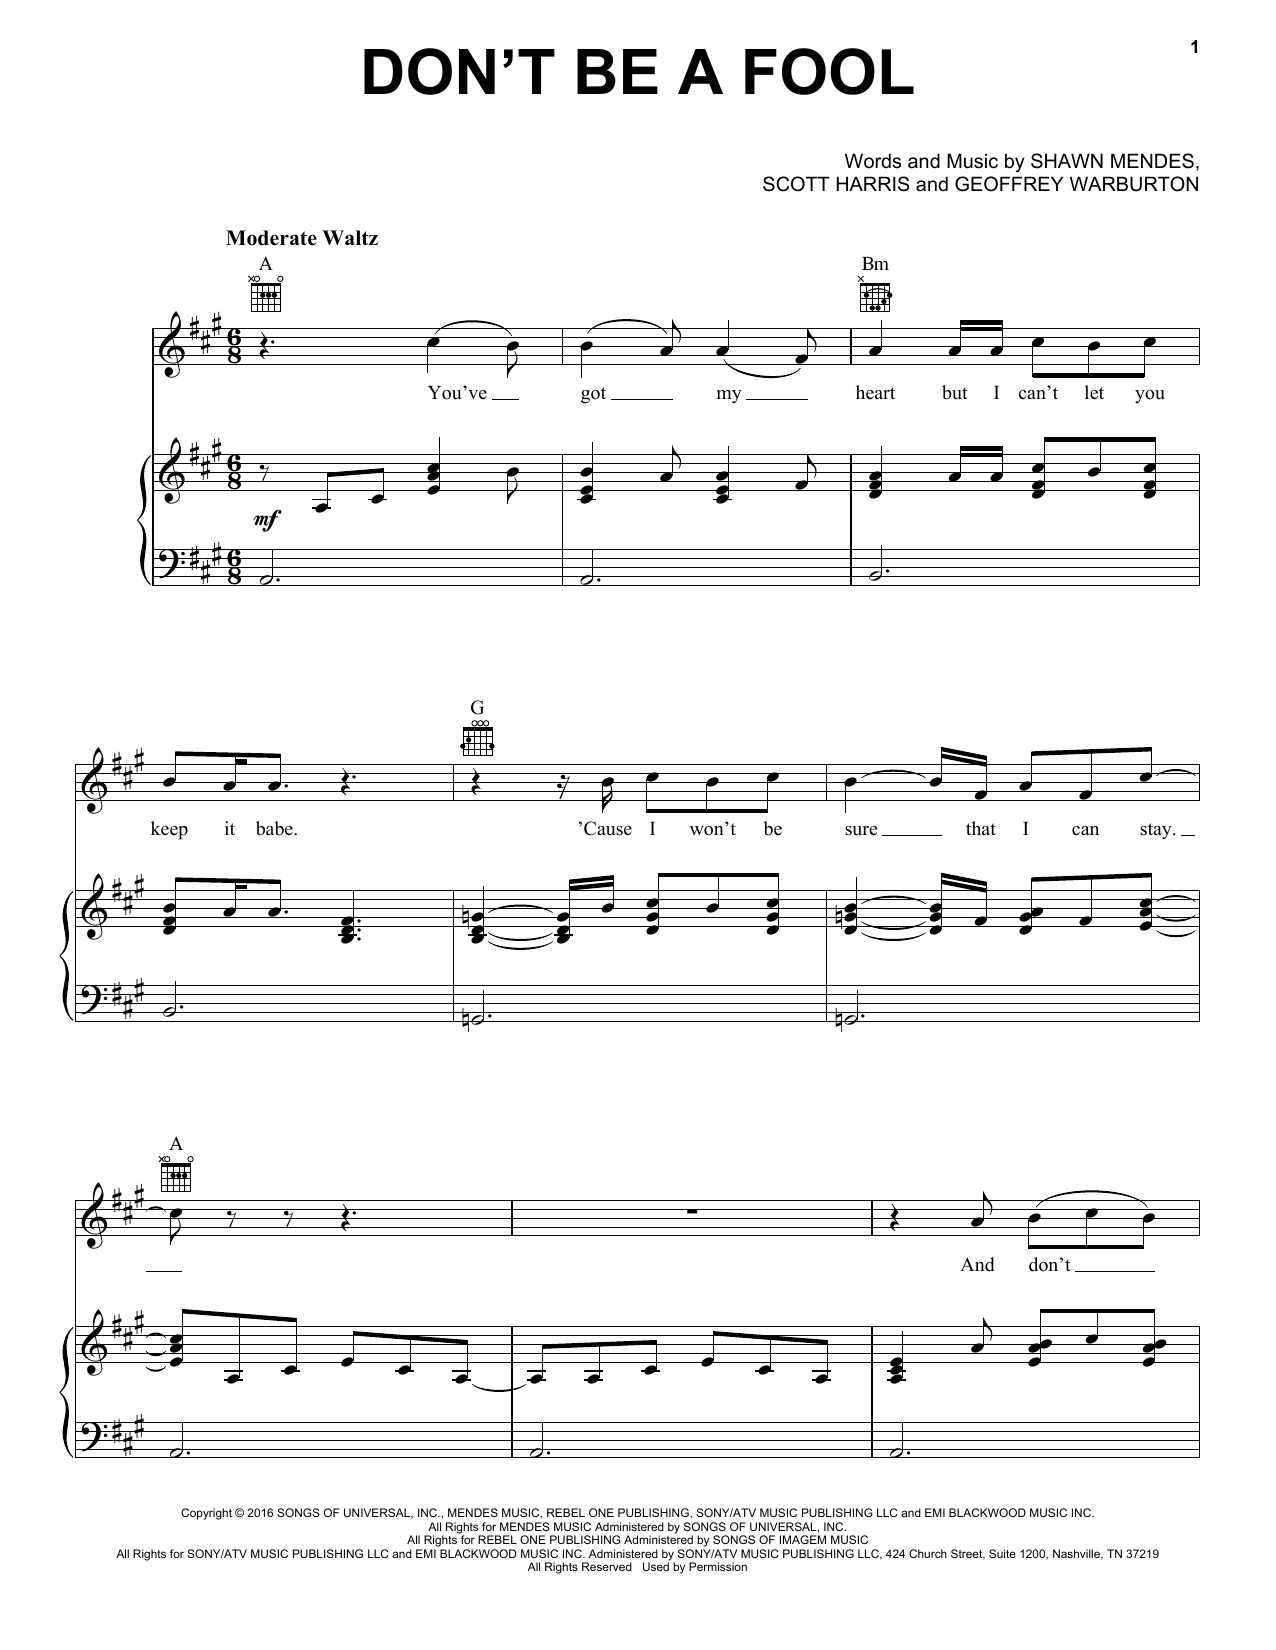 Shawn Mendes Don T Be A Fool Sheet Music Pdf Notes Chords Pop Score Piano Vocal Guitar Right Hand Melody Download Printable Sku 177279